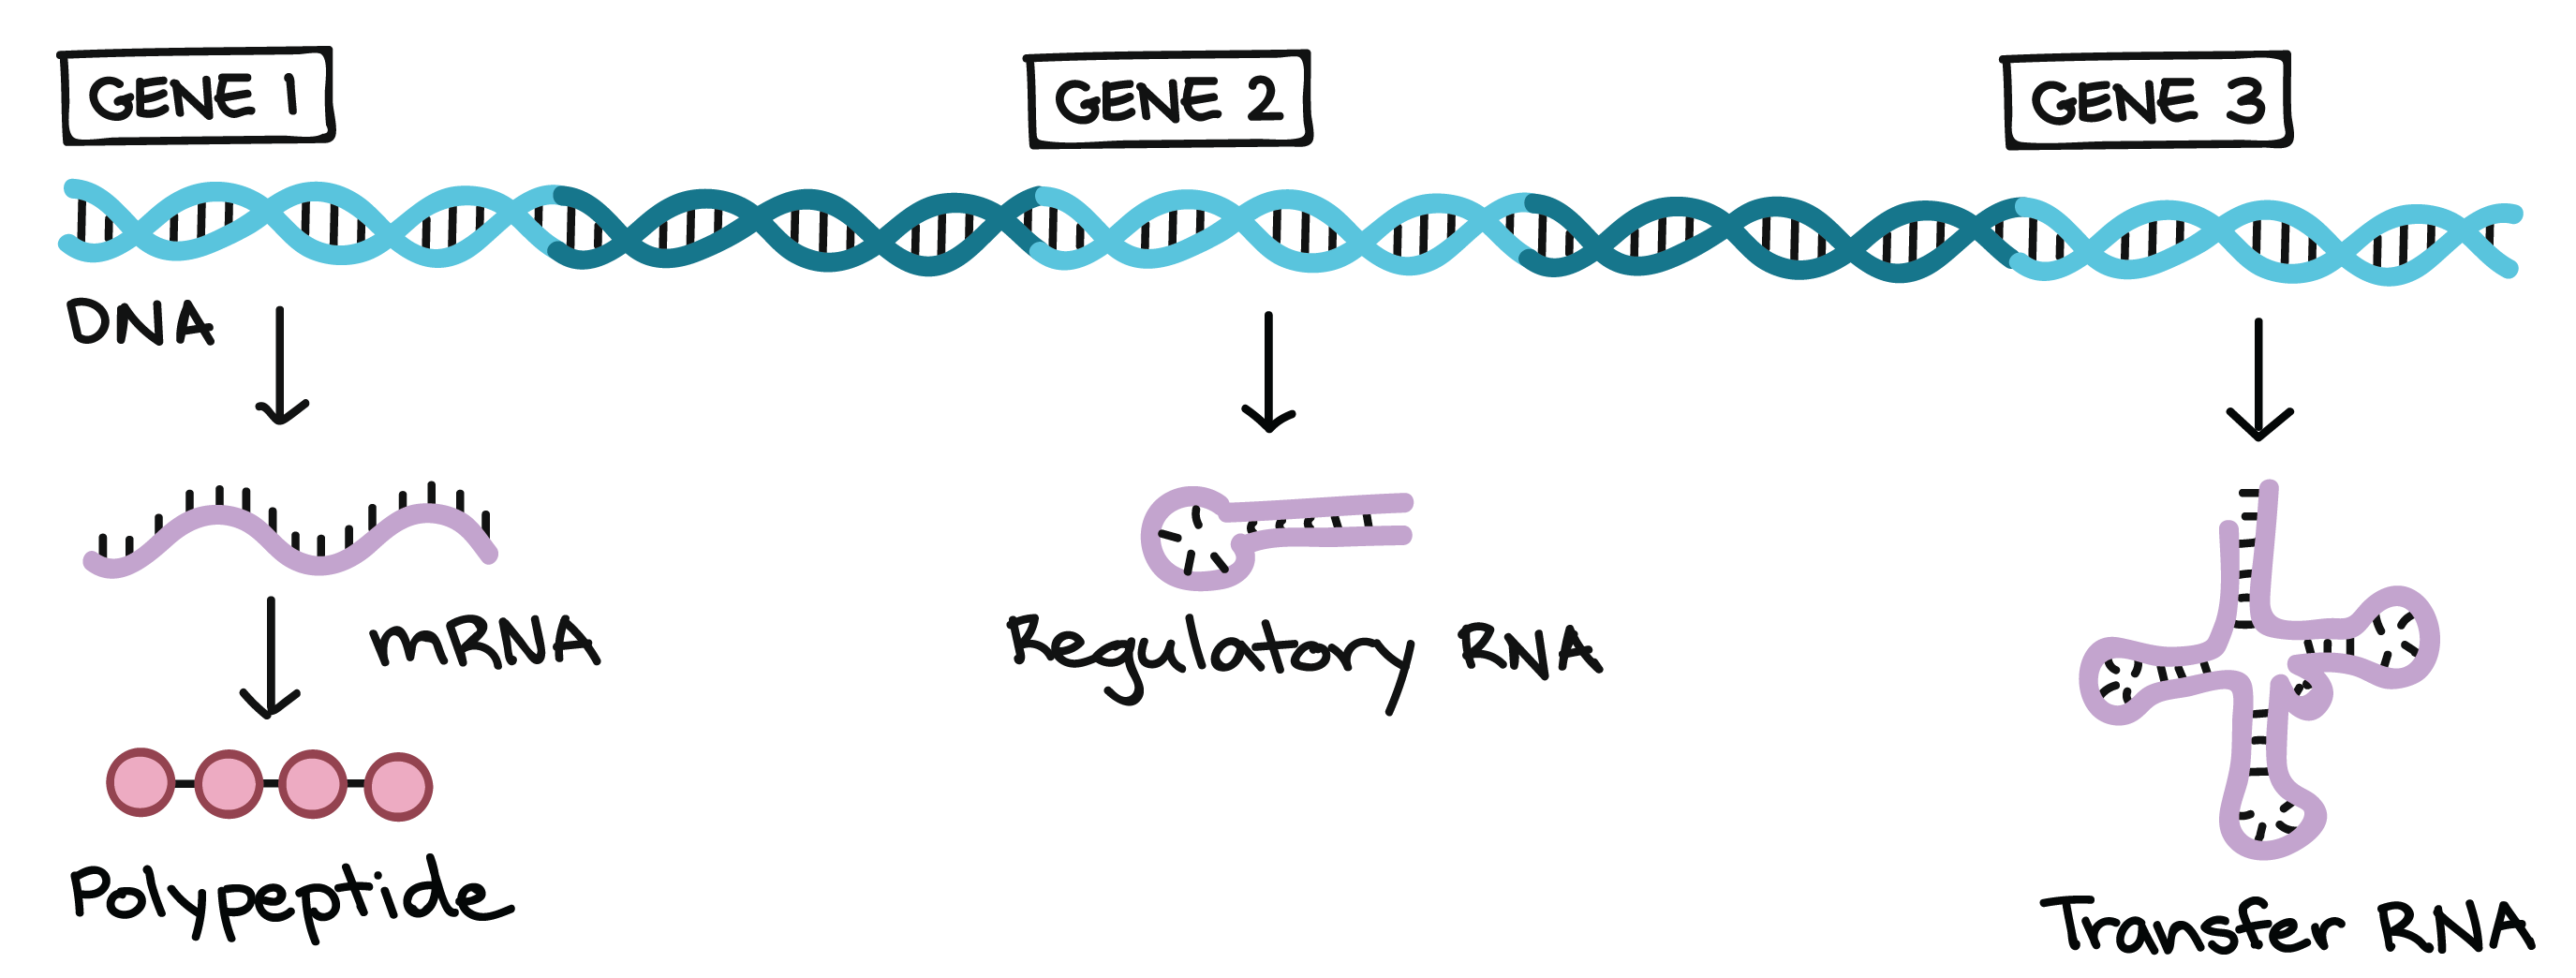 worksheet Dna And Genes Worksheet Answers the genetic code article khan academy